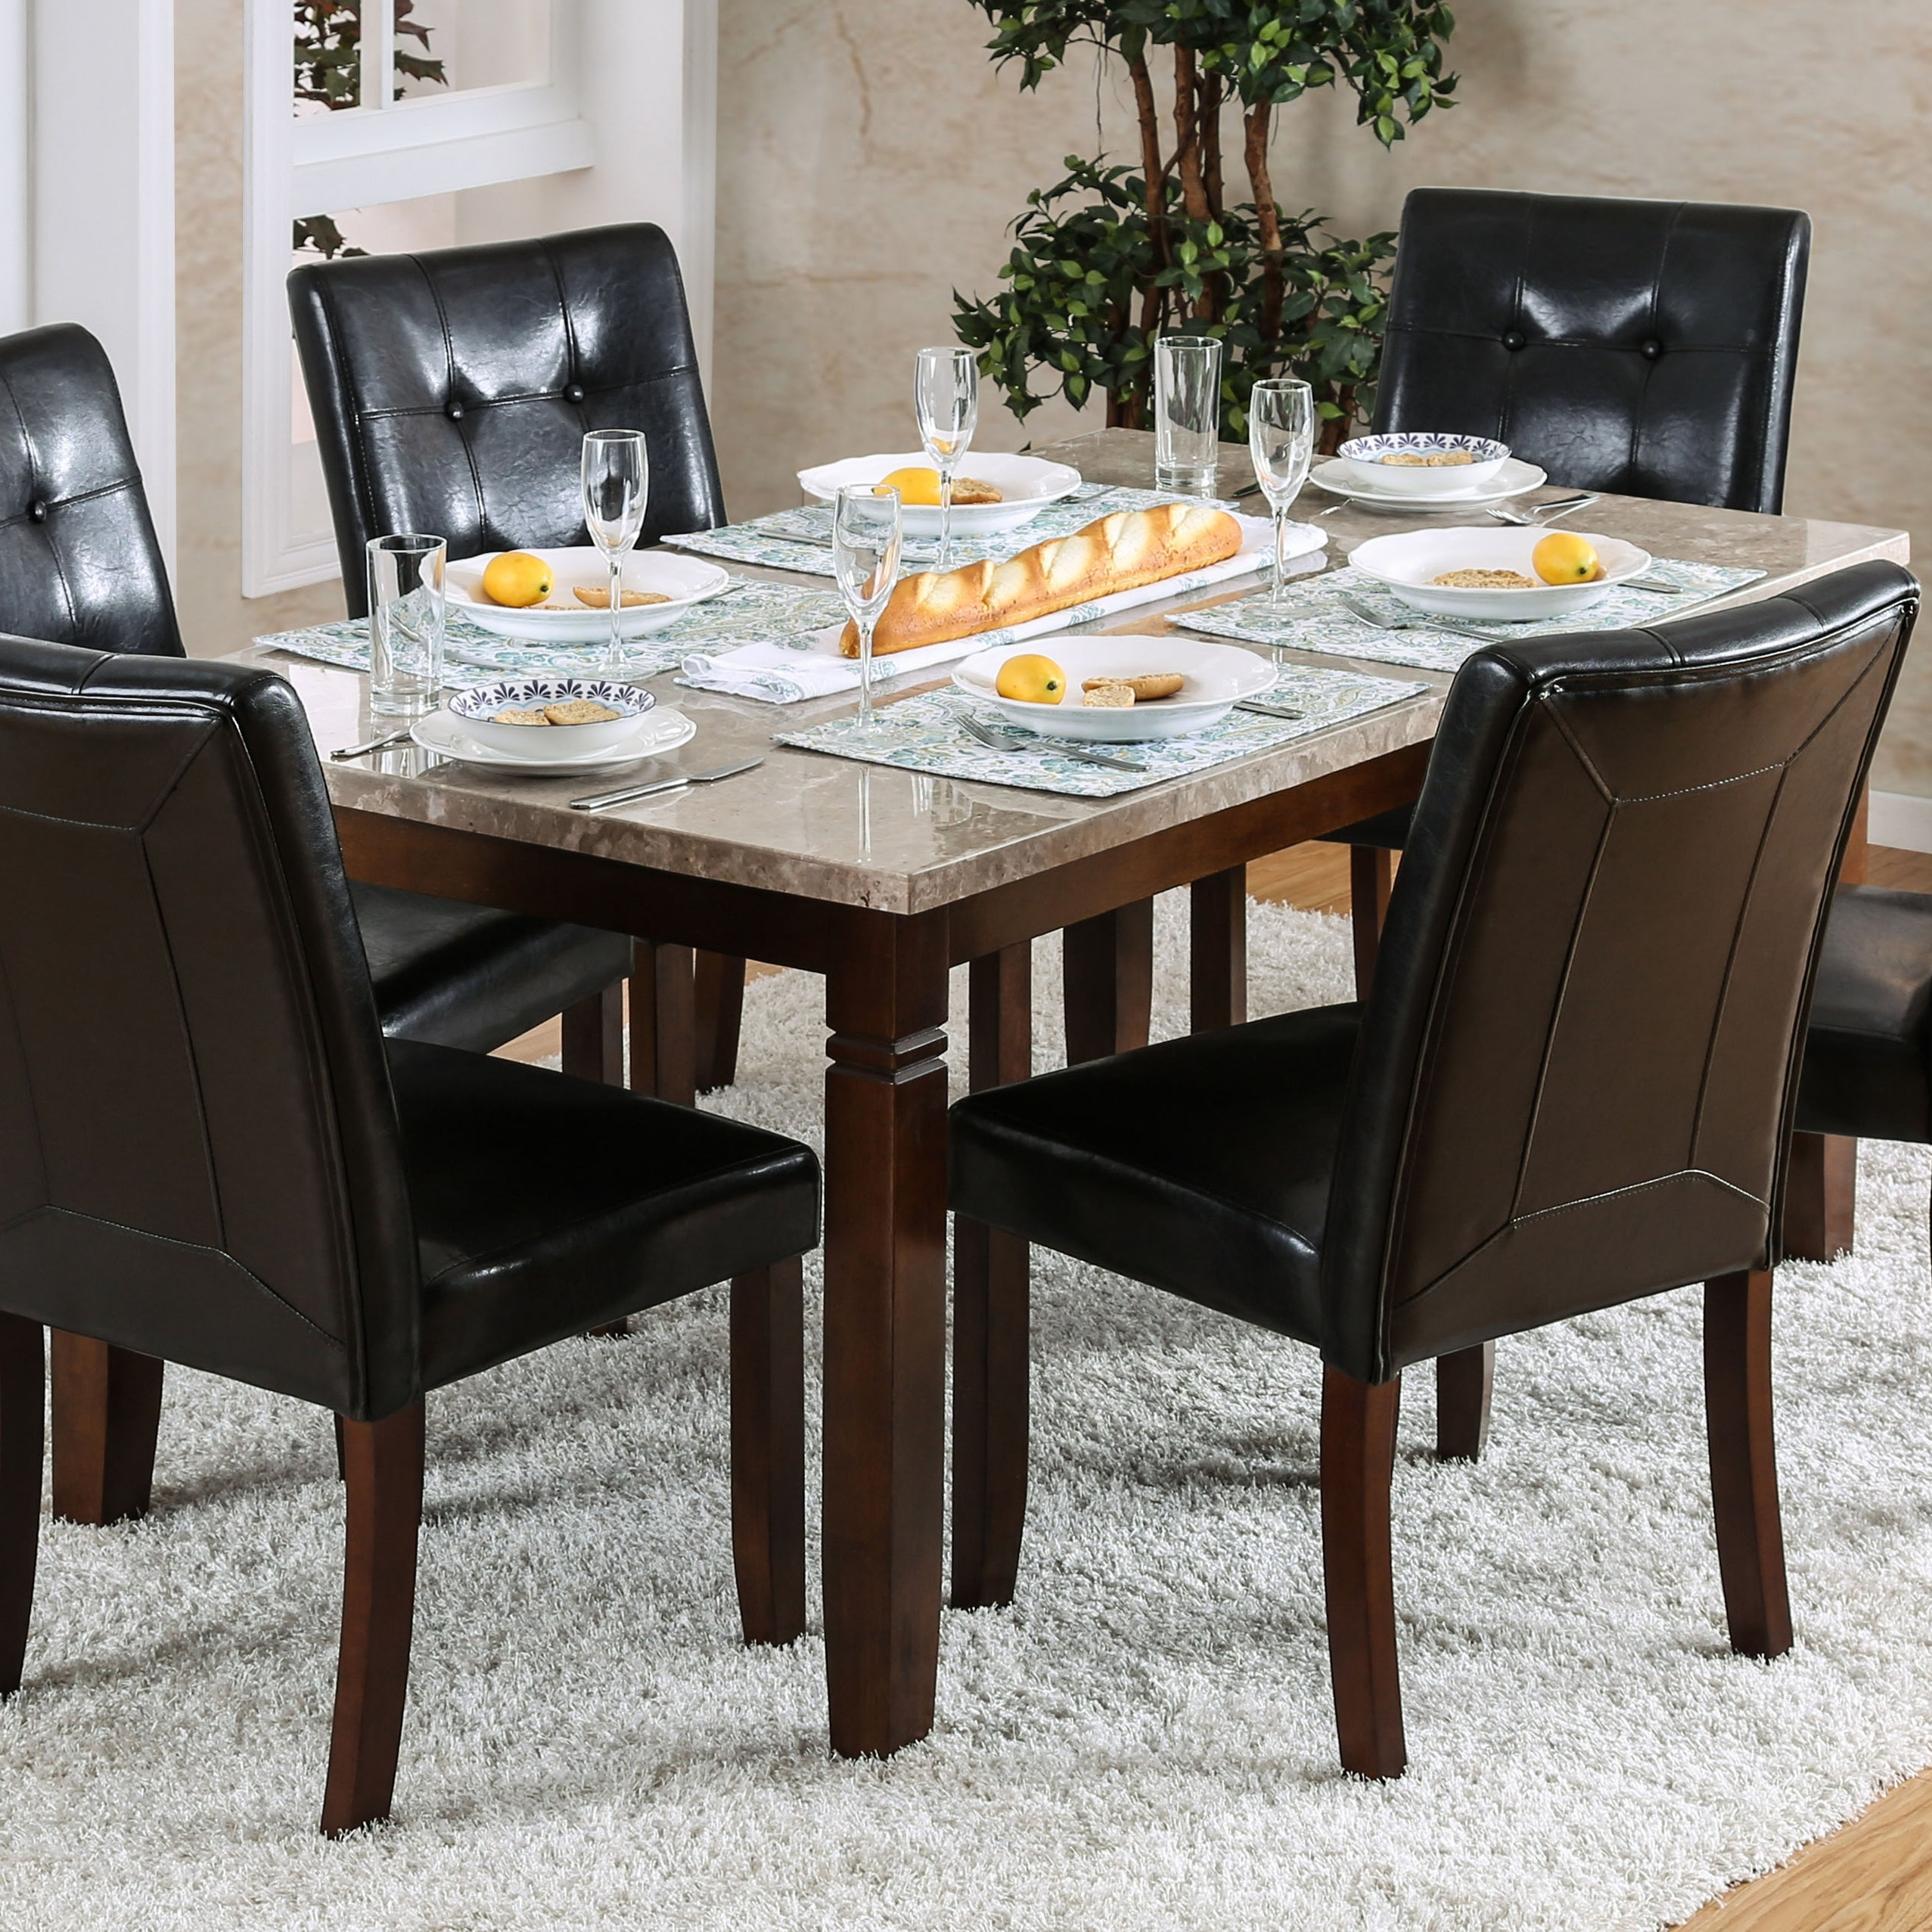 Red Barrel Studio Gibbons 7 Piece Dining Set | Wayfair For Most Recent Candice Ii 7 Piece Extension Rectangle Dining Sets (Image 16 of 20)